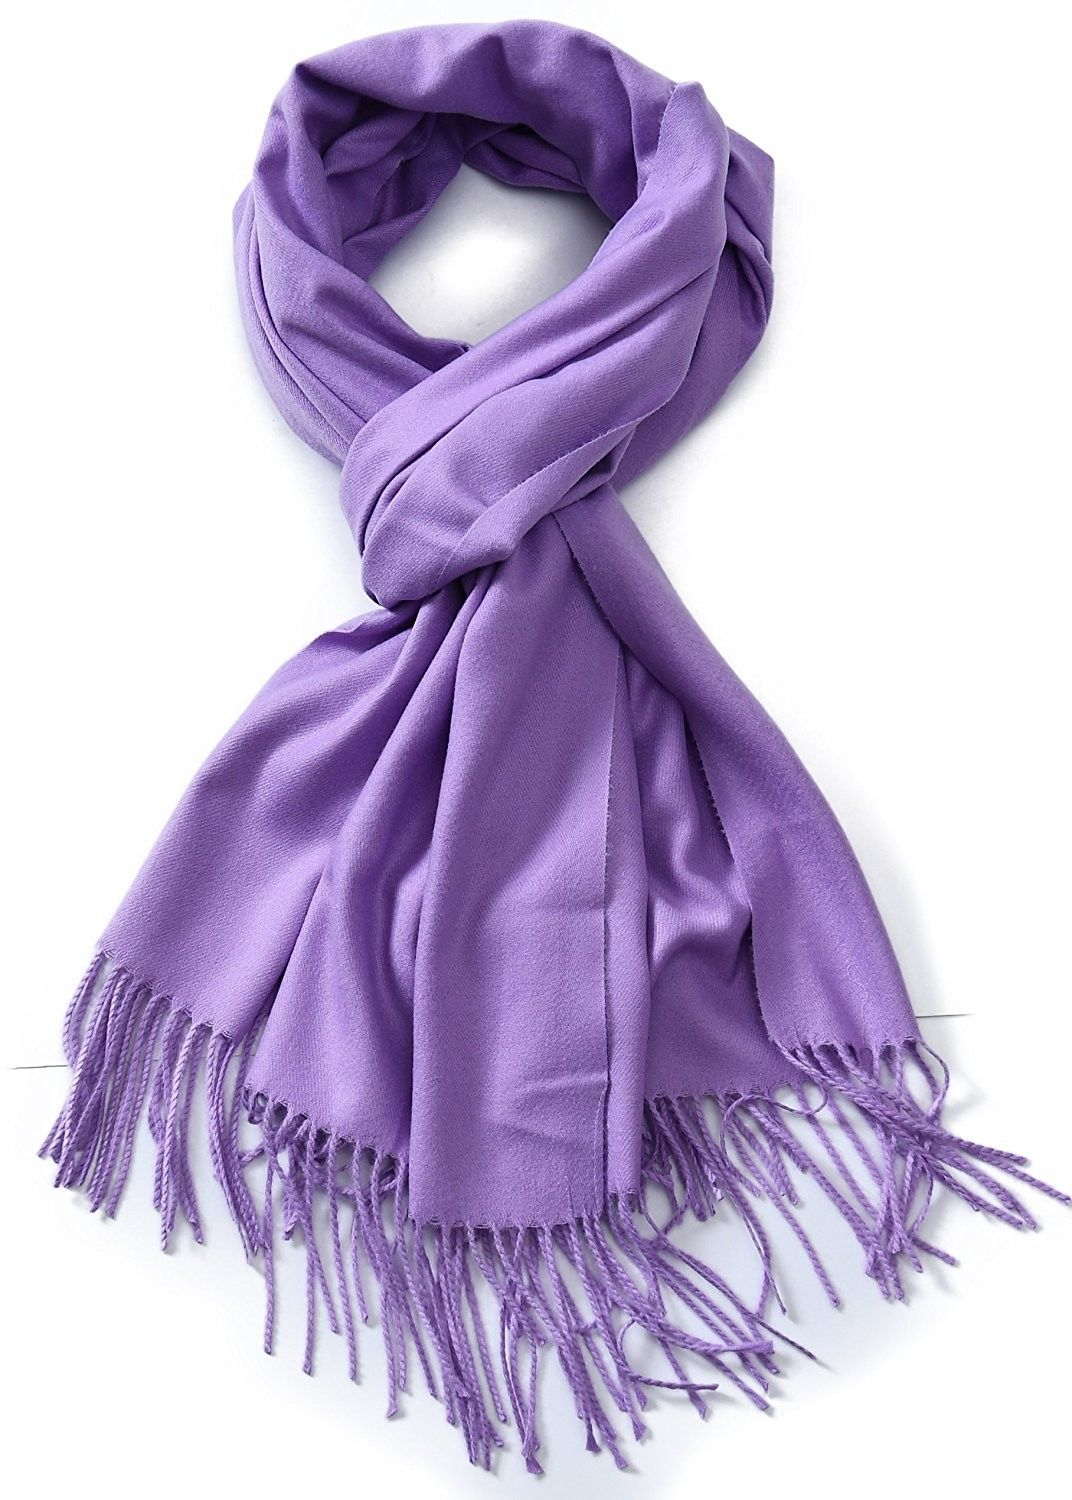 707c595e895 Cindy & Wendy Large Soft Cashmere Feel Pashmina Solid Shawl Wrap ...